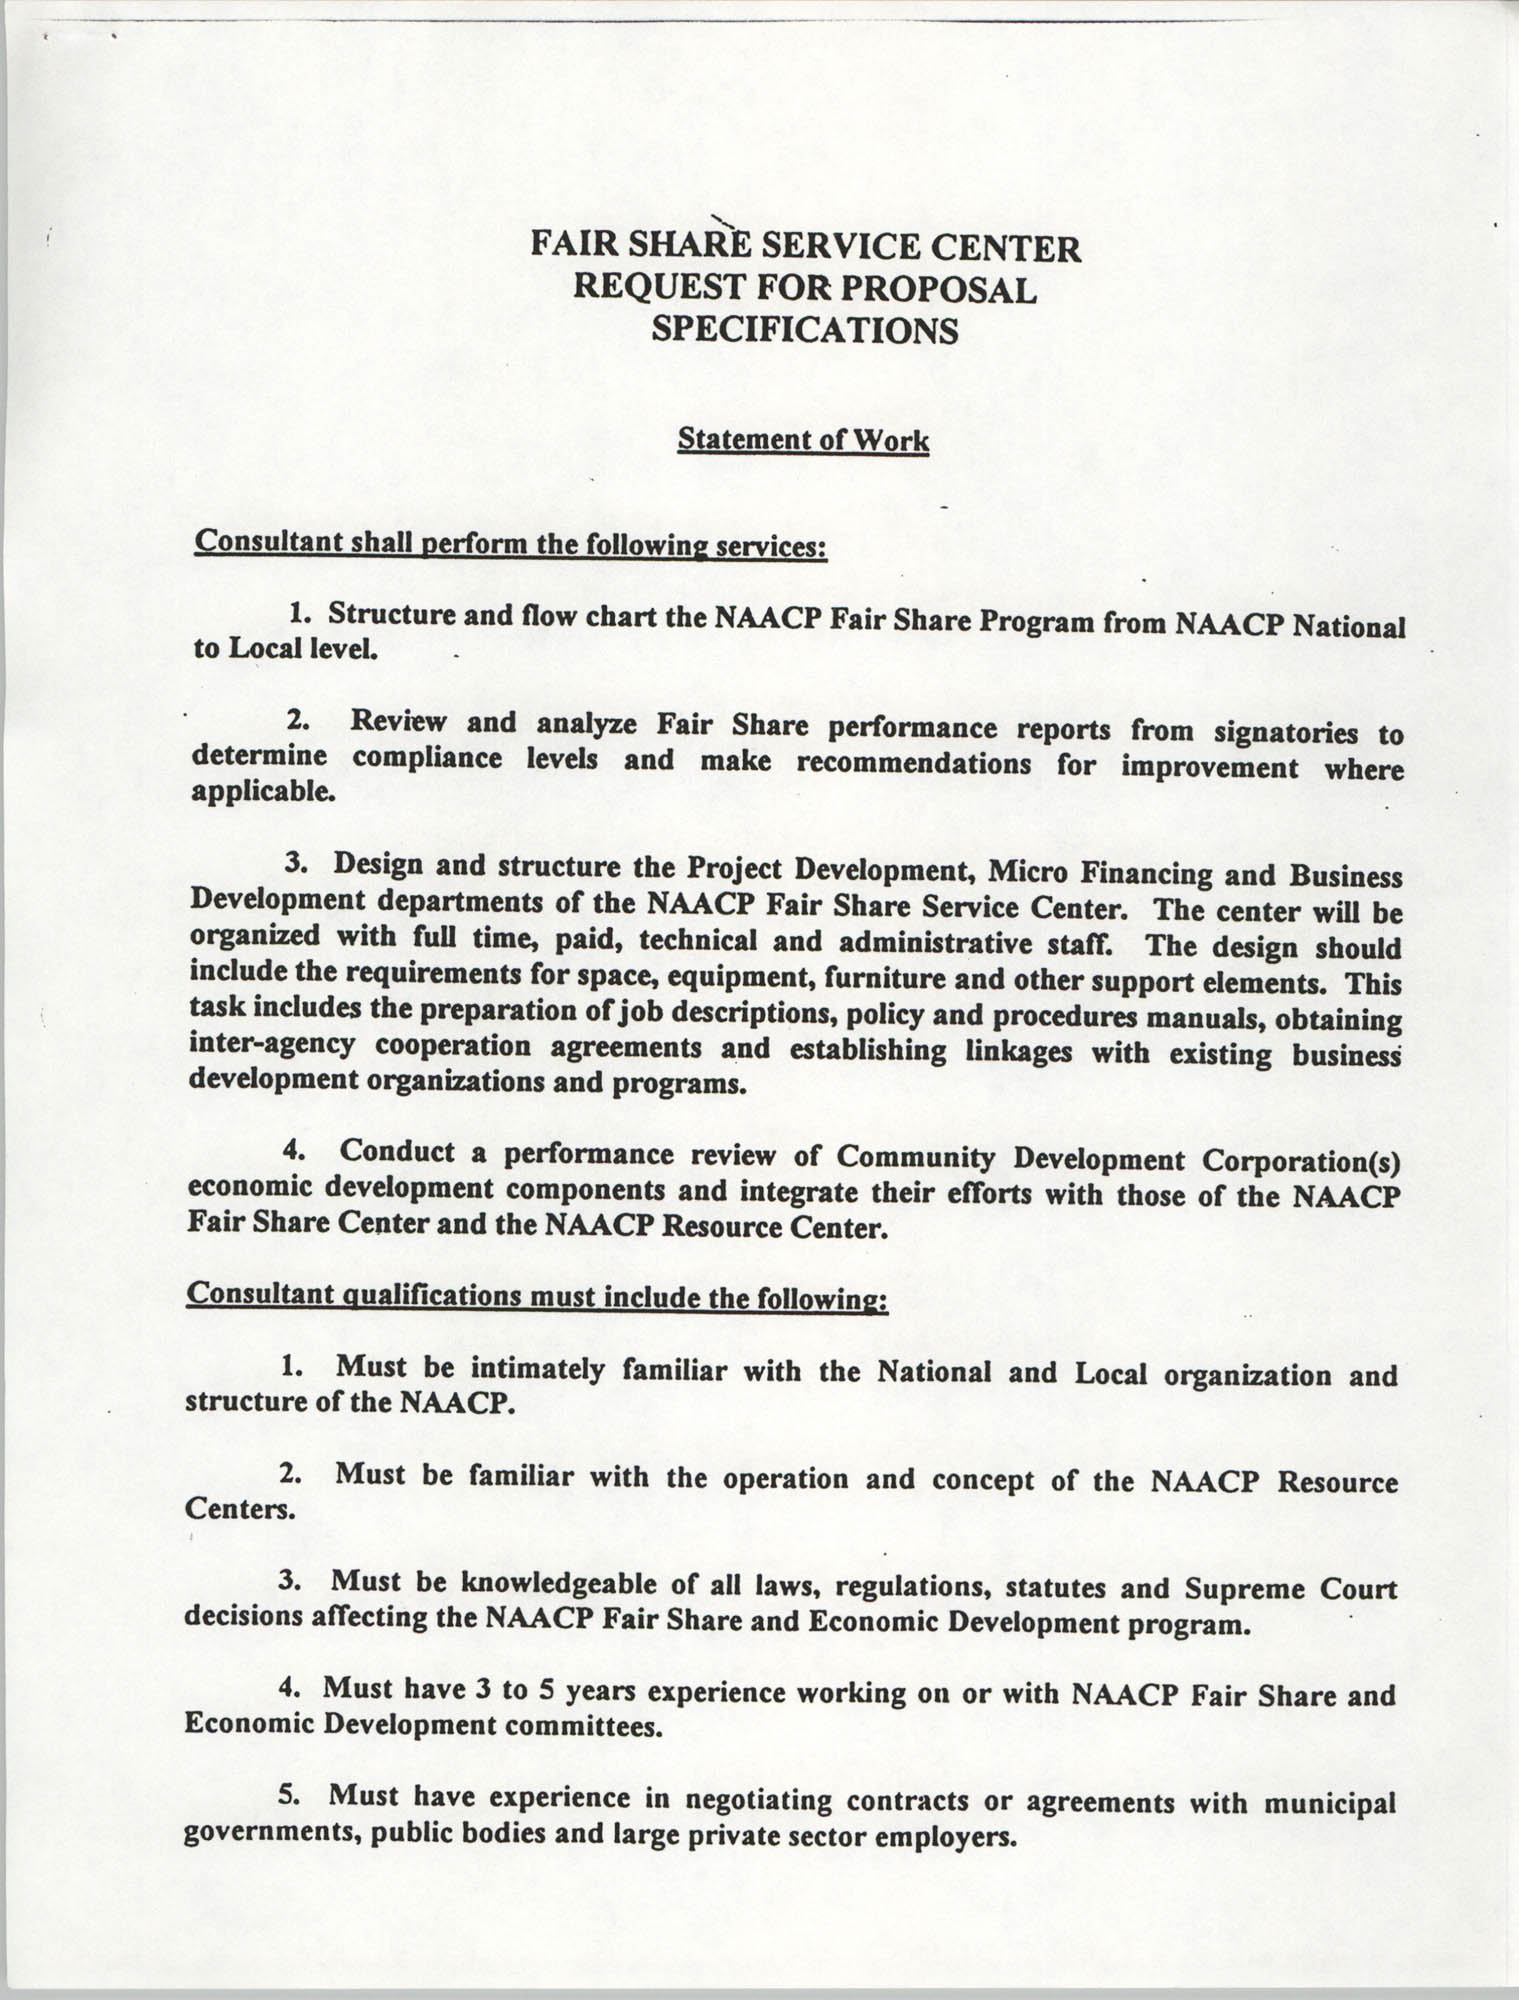 Fair Share Service Center Request for Proposal Specifications, Page 1